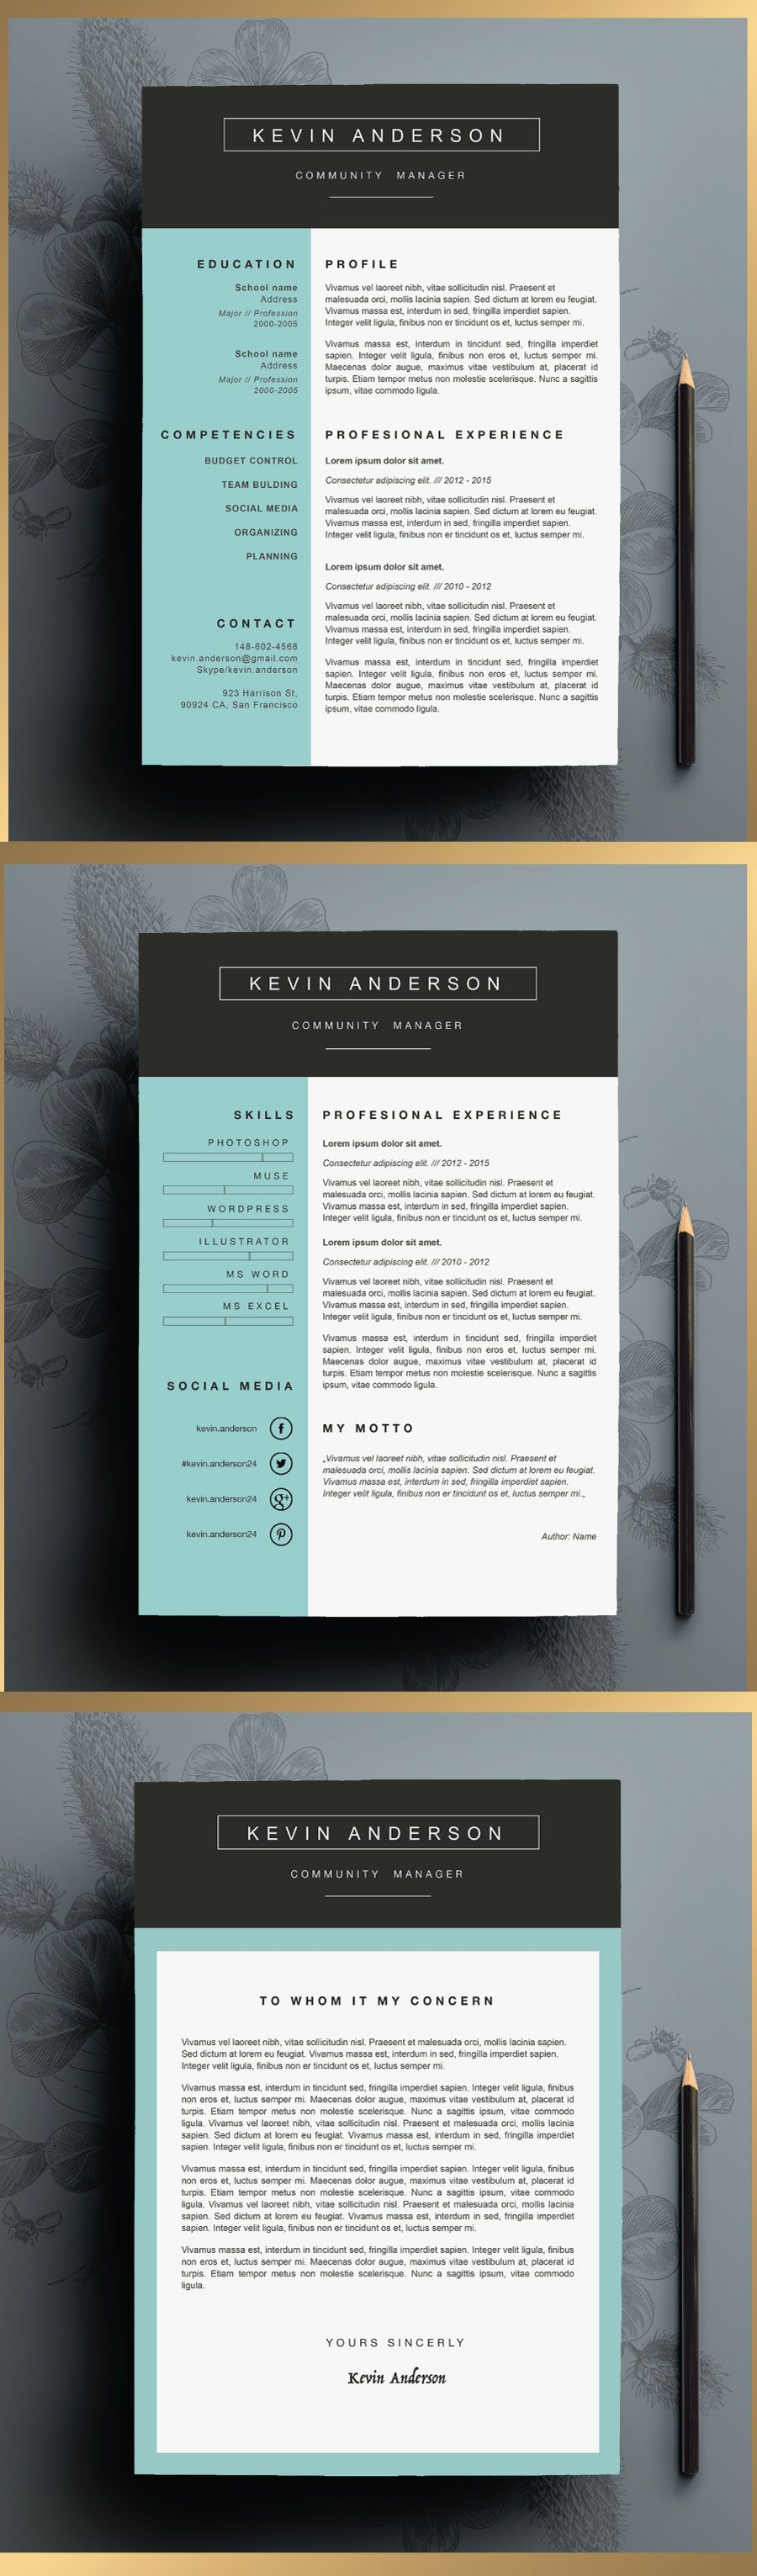 stylish resume template editable in ms word by cvdesign